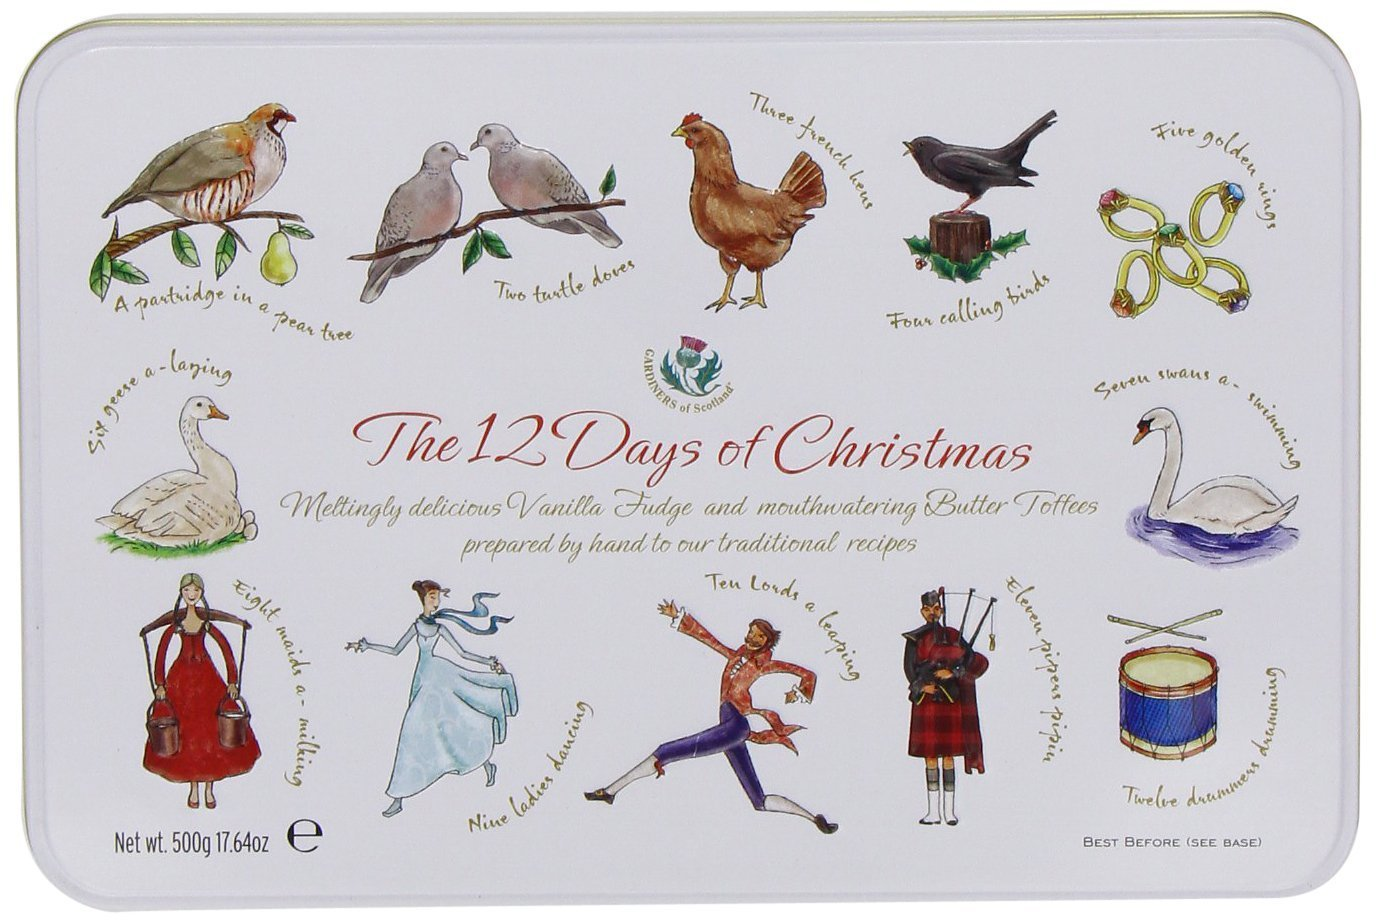 Gardiners of Scotland The Twelve Days of Christmas Fudge Caramels and Toffee, 17.64-Ounce Containers by Gardiners of Scotland